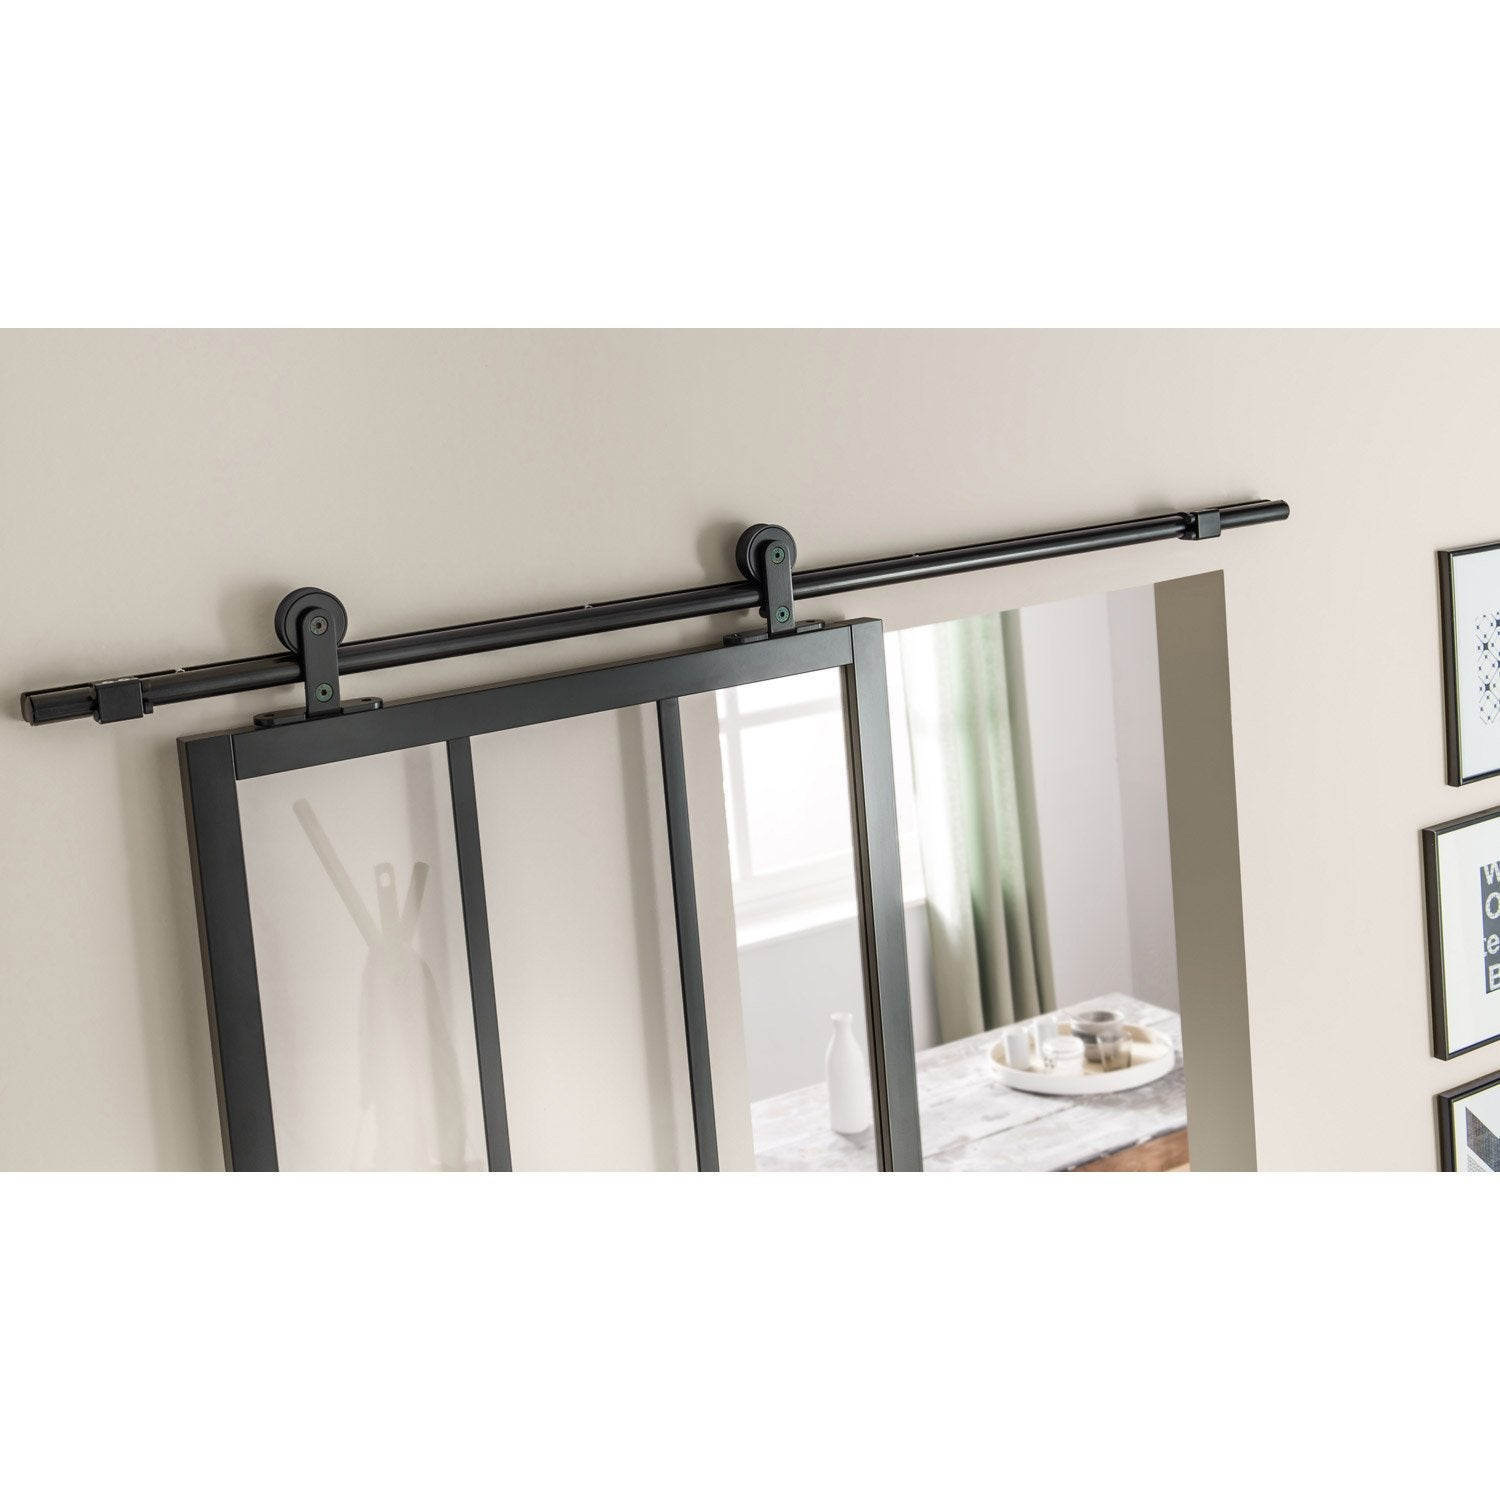 Charmant Rail Coulissant Bolero 2 Noir, Pour Porte De Largeur 93 Cm Maximum Inspirations De Conception